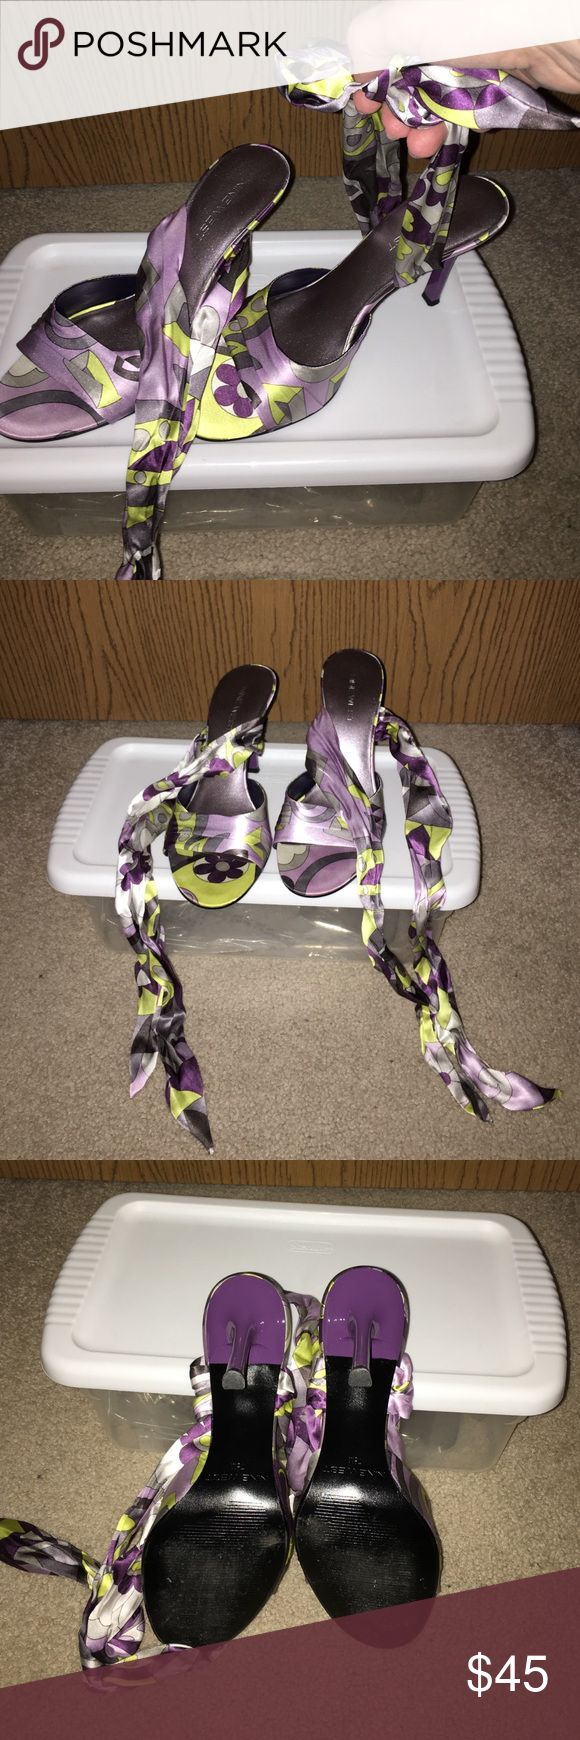 NWOT Retro Satin Open Toe, Ankle Wrap Sandals NWOT Retro Satin Open Toe, Ankle Wrap Sandals. GORGEOUS!! Beautiful retro purple & green theme, never worn. Would be beautiful for a wedding, summer party or just because! Nine West Shoes Sandals